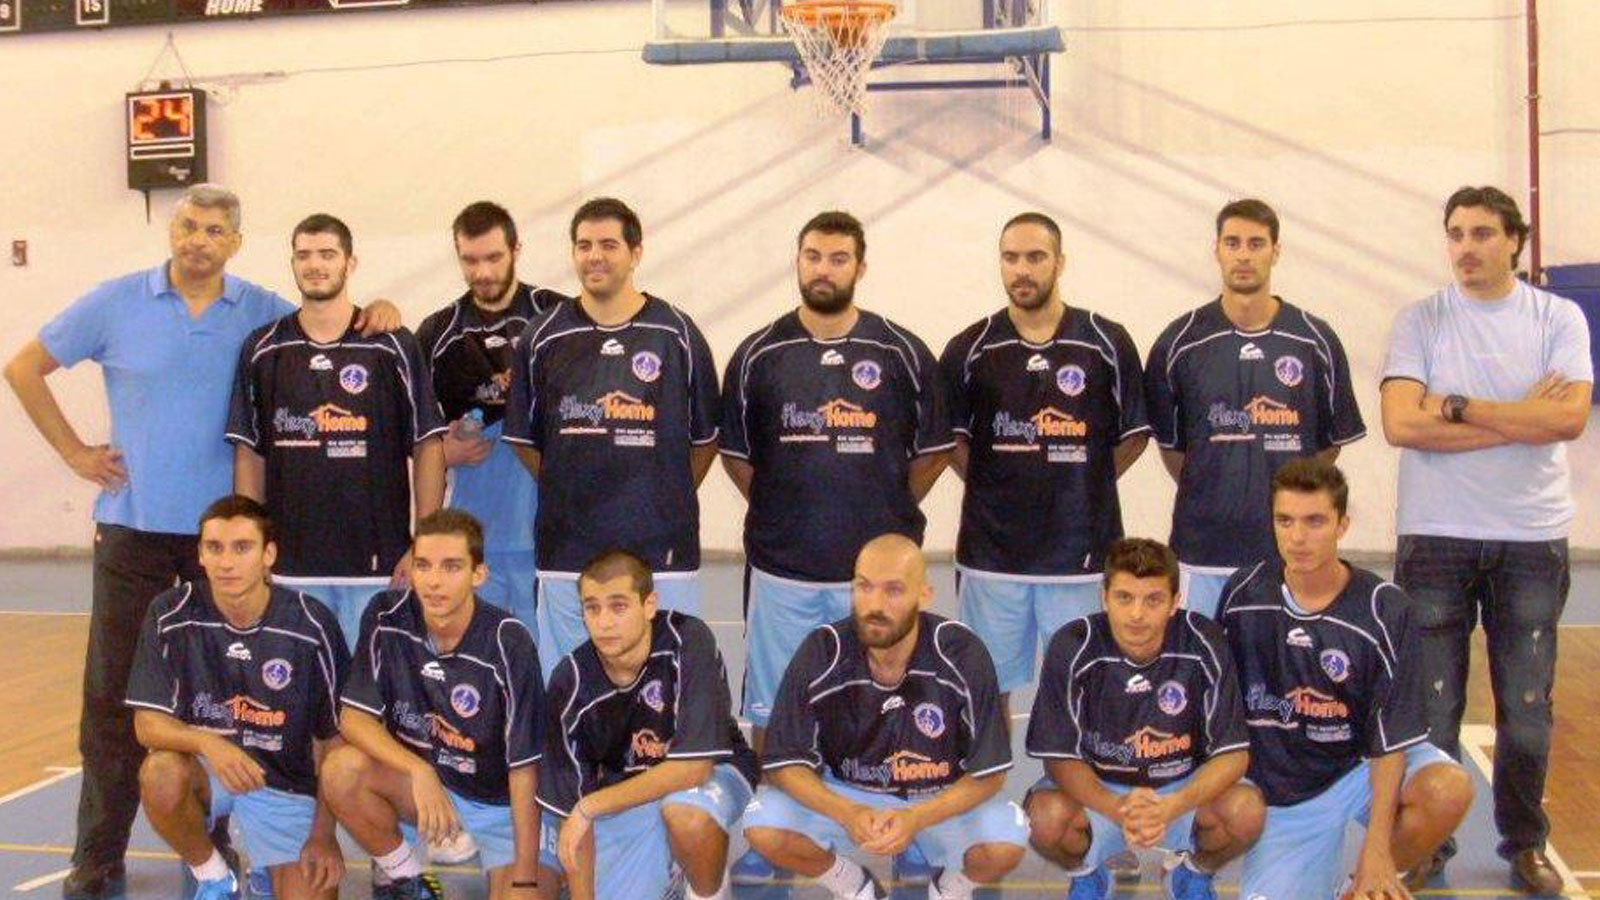 The A.O. Markopoulos basketball team is sponsored by Kofinas company